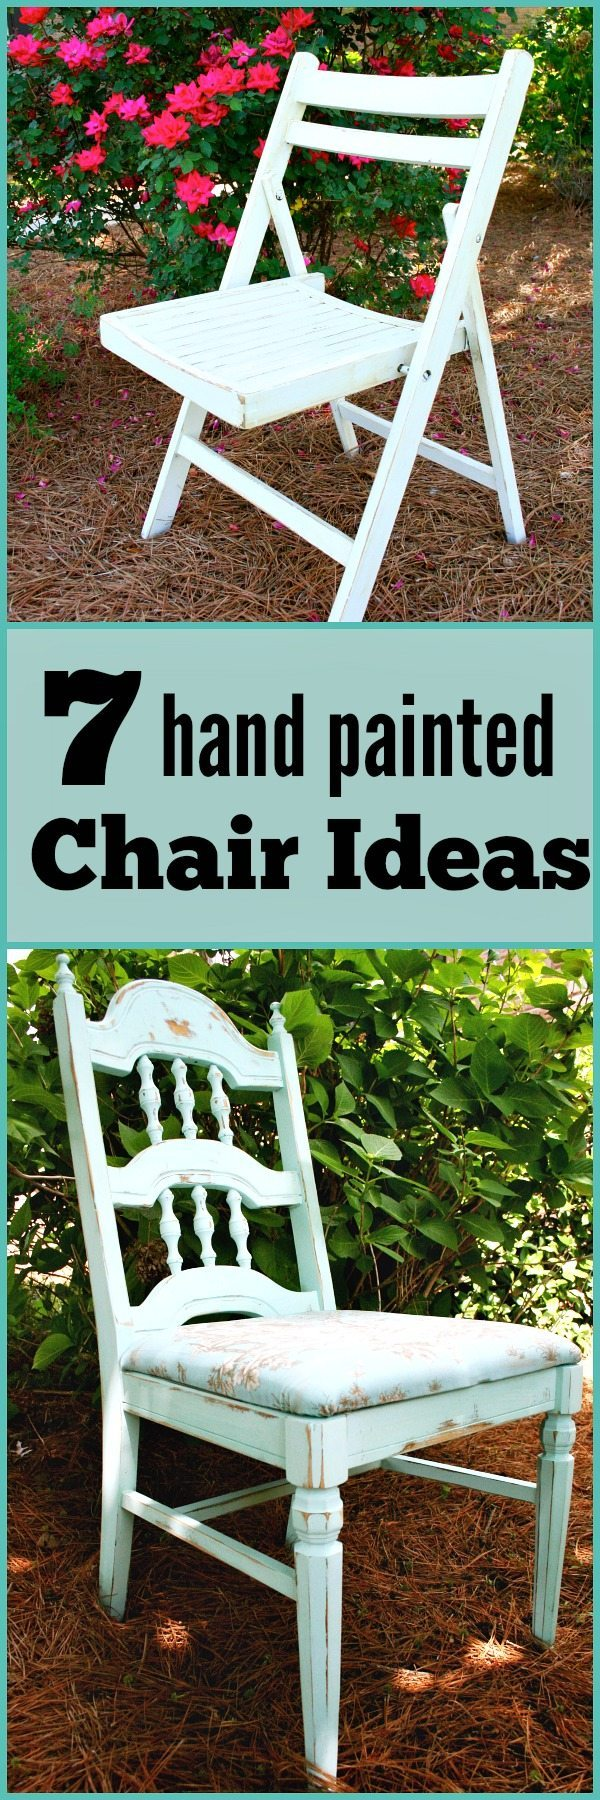 Ideas for hand painted chairs - Seven Hand Painted Chair Ideas